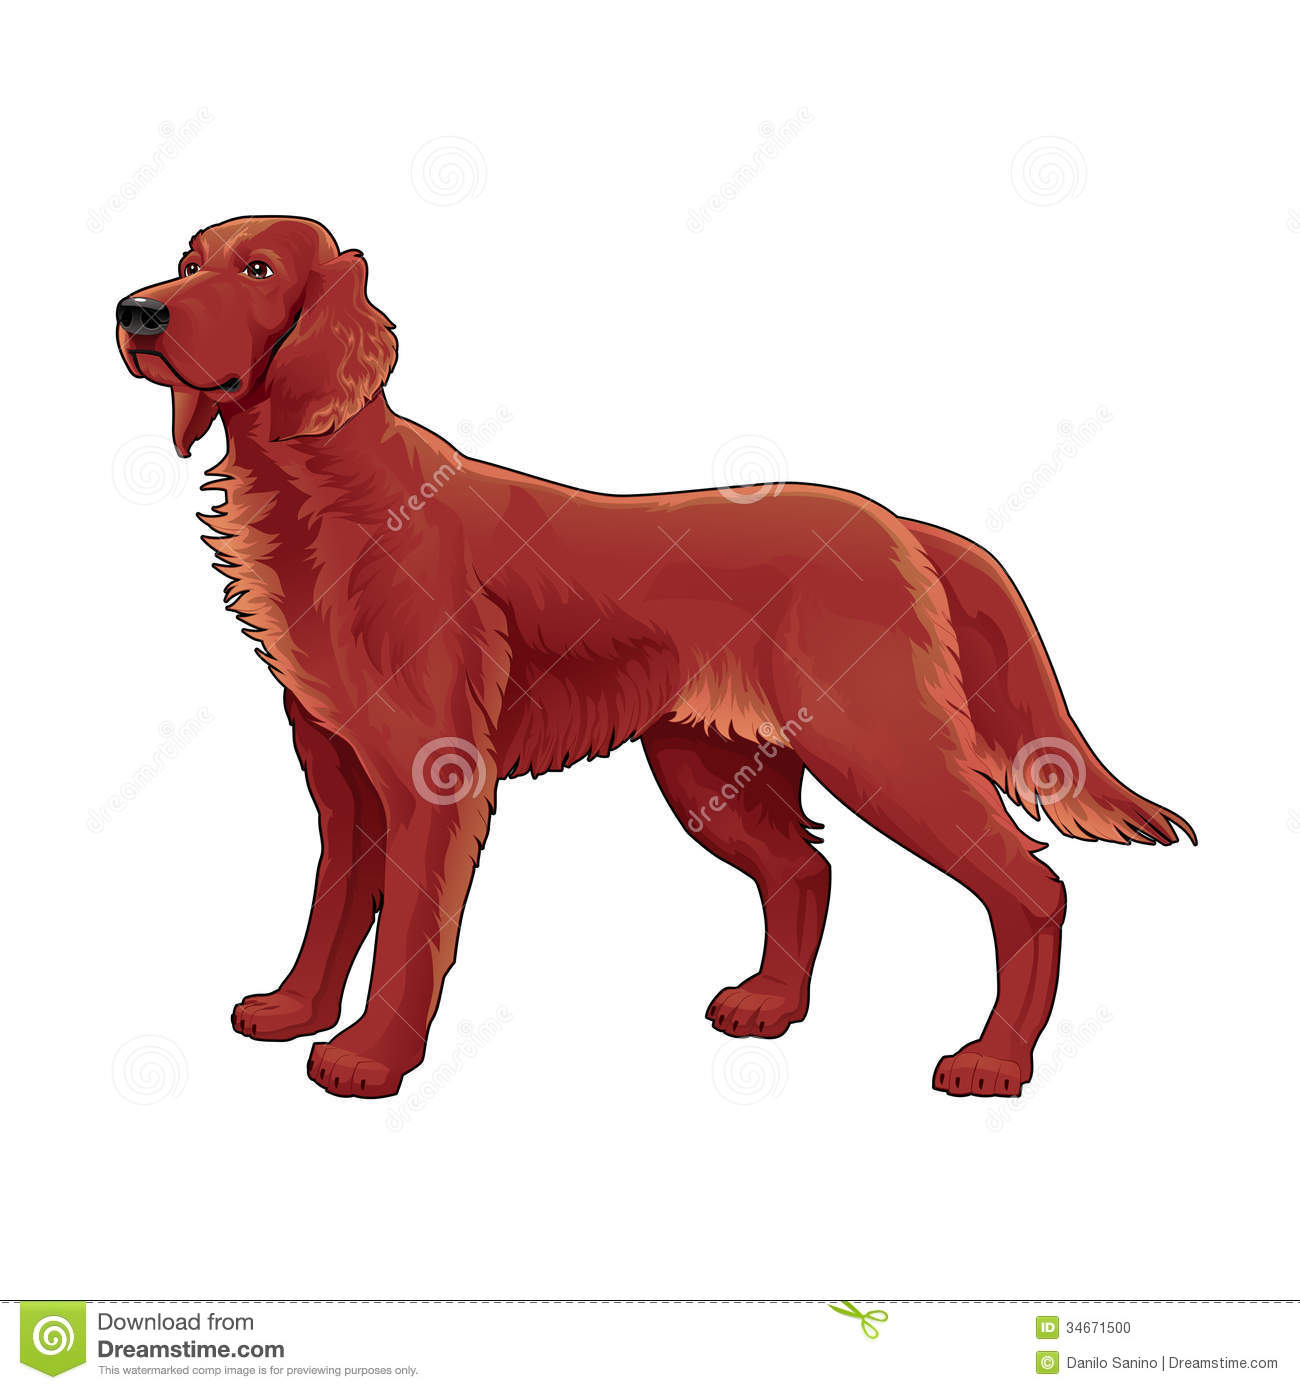 Red Setter clipart #17, Download drawings